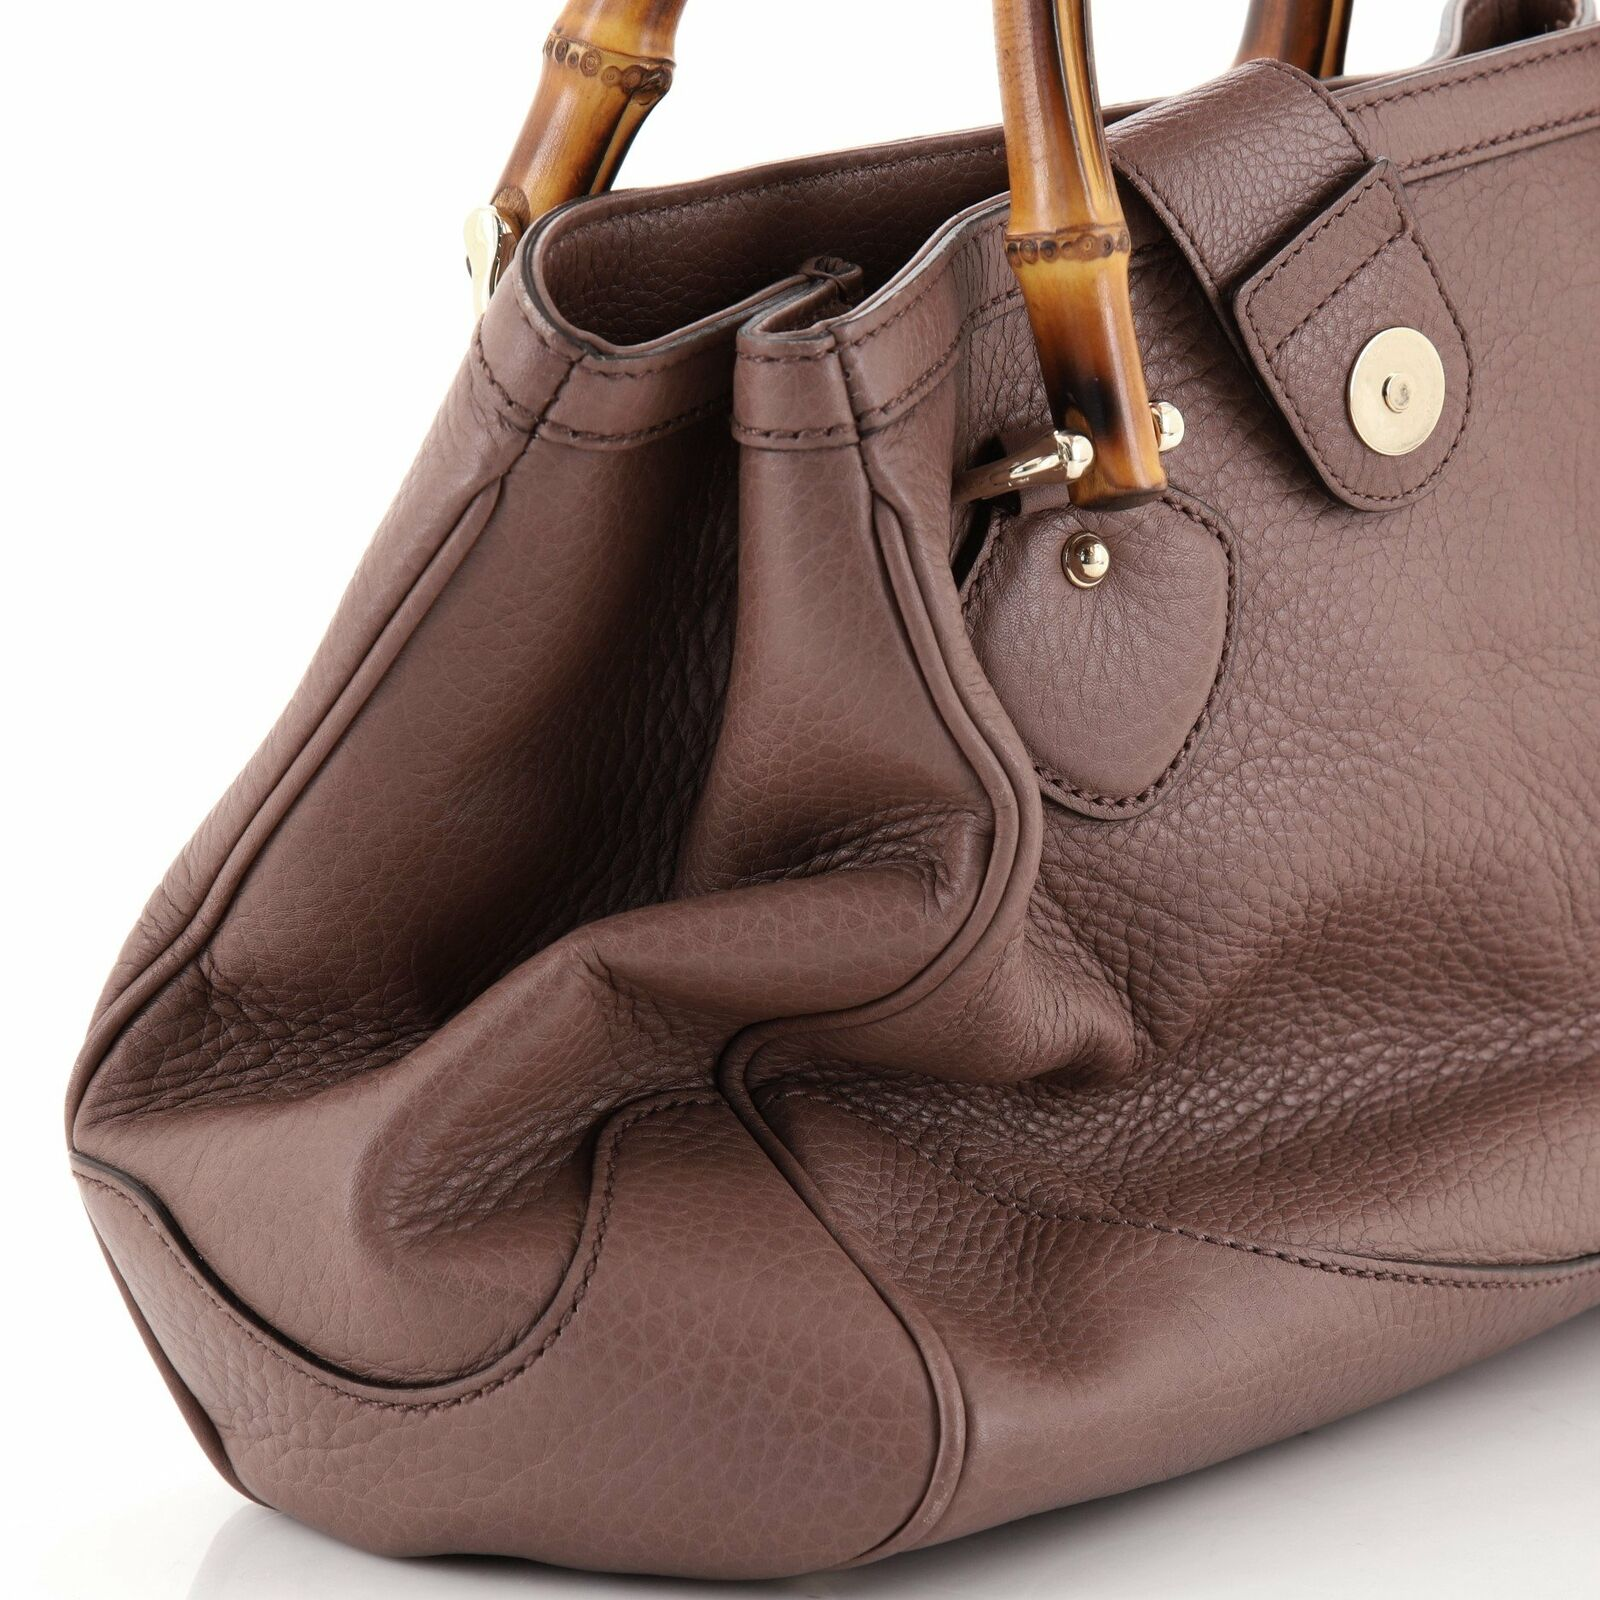 Gucci Diana Bamboo Top Handle Tote Leather Small - image 7